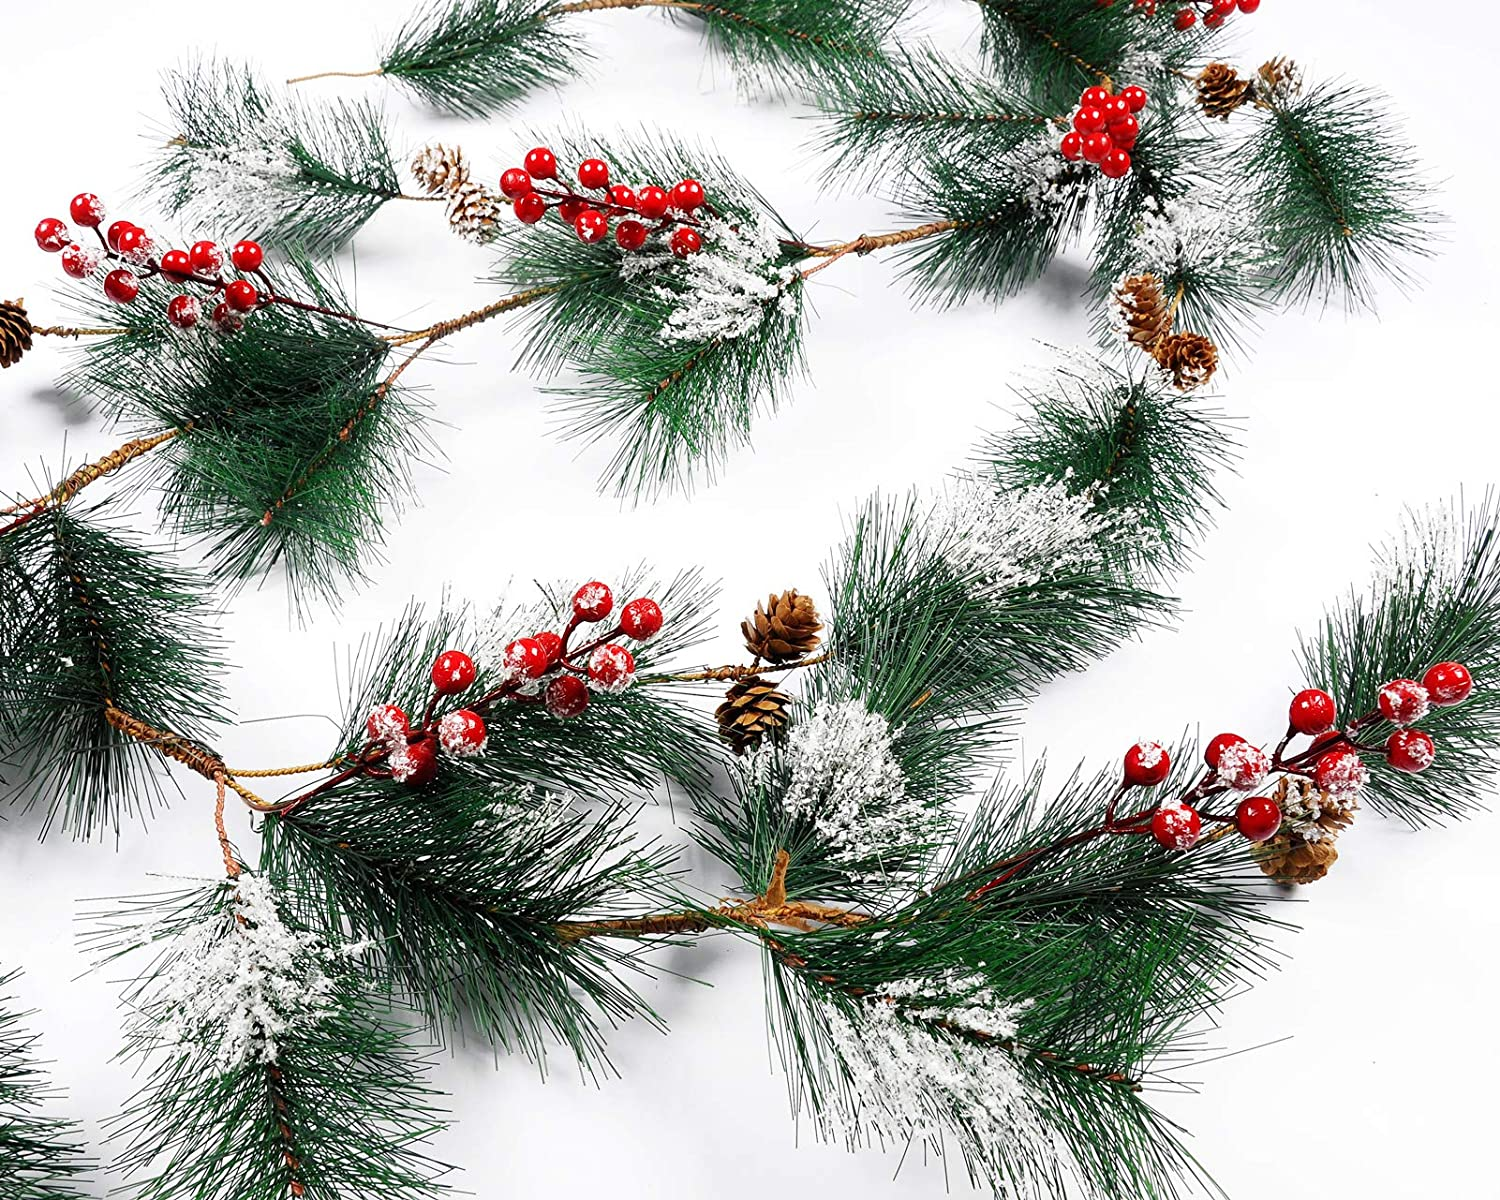 Meiliy Christmas Pinecone Garland 6.6ft Pine Needle Red Berry Wreath Hanging Vine Mantel Fireplace Table Centerpiecefor Indoor Outdoor Christmas Home Decor